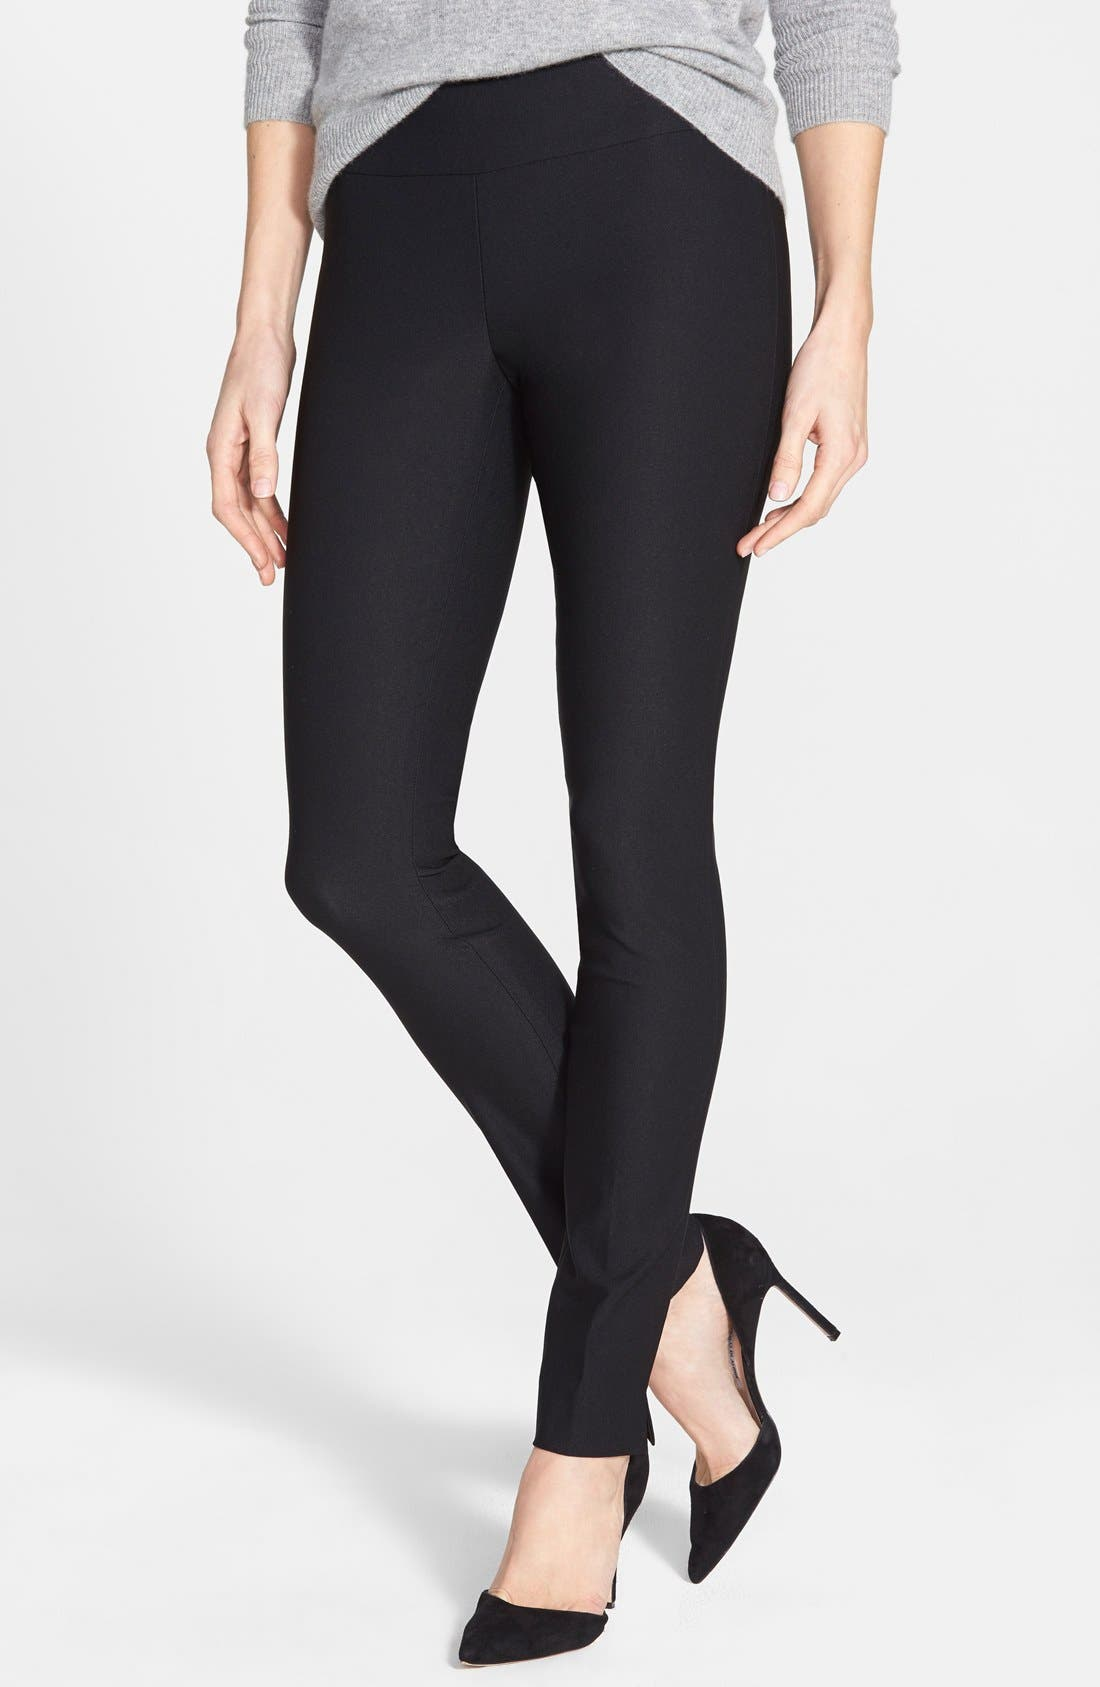 Wonderstretch Slim Leg Pants,                             Main thumbnail 1, color,                             004